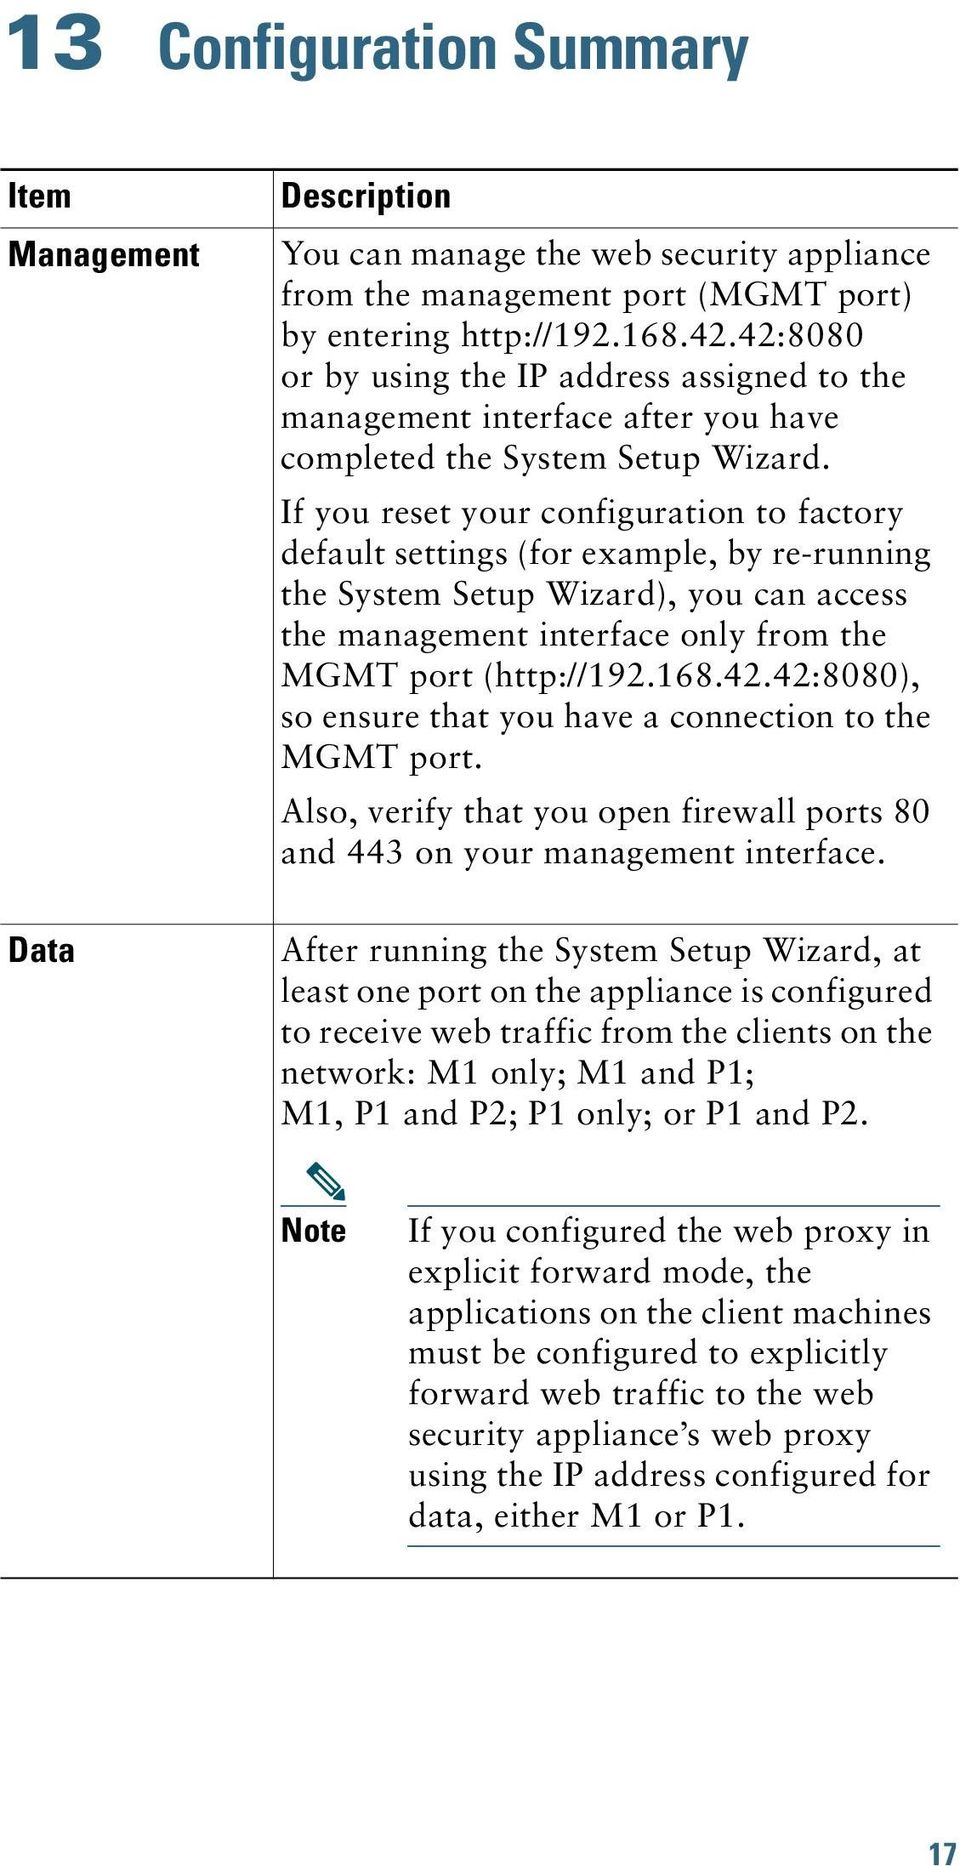 If you reset your configuration to factory default settings (for example, by re-running the System Setup Wizard), you can access the management interface only from the MGMT port (http://192.168.42.